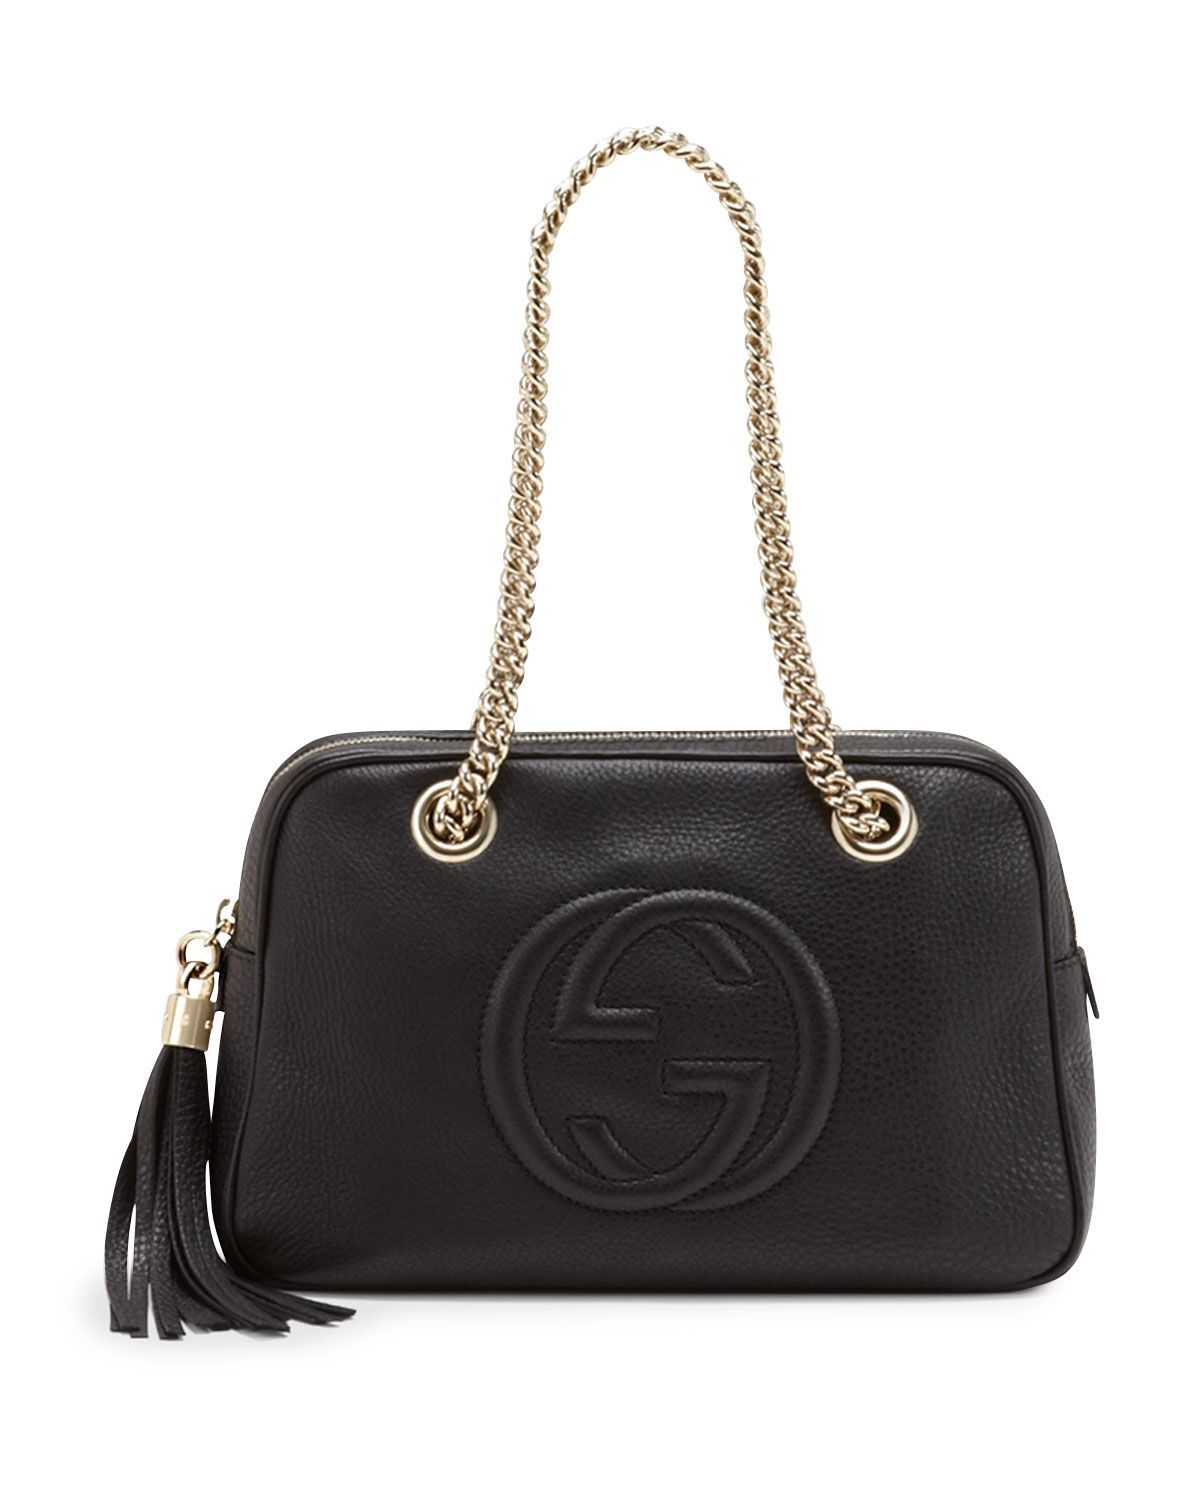 4e6731f0b61 Gucci Soho Leather Double-Chain-Strap Shoulder Bag